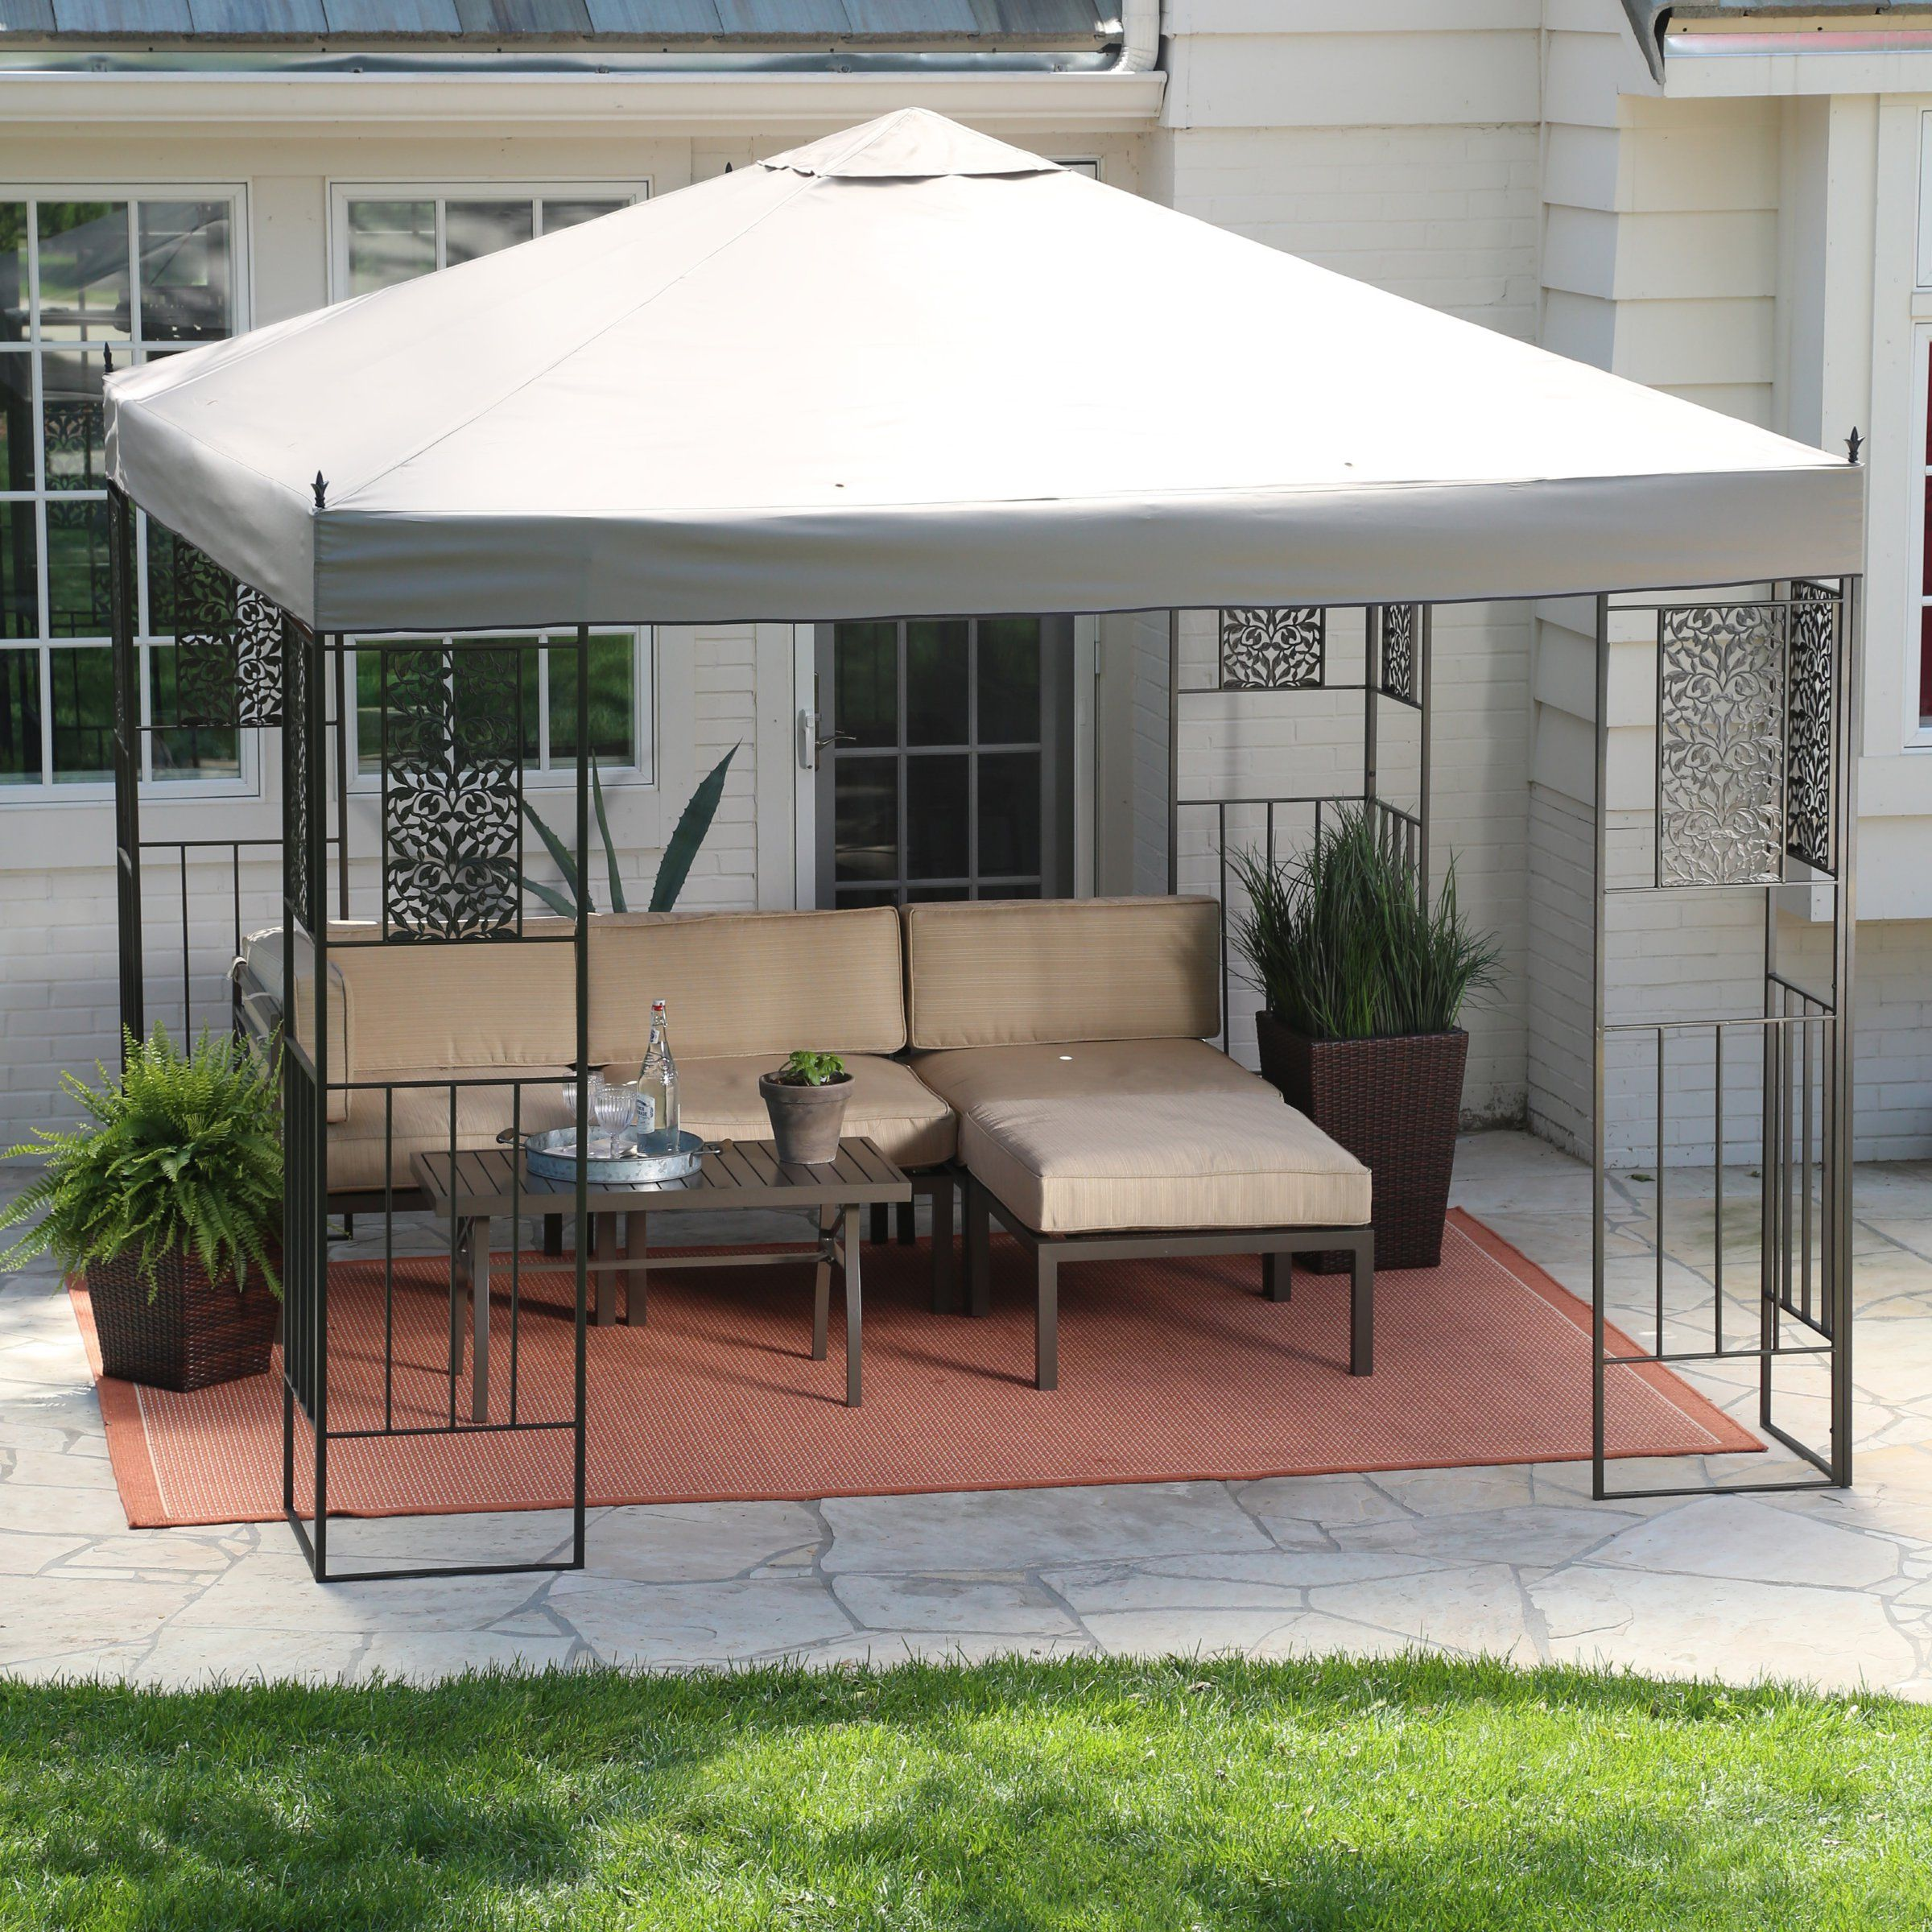 Coral Coast Garden Bloom 10 X 10 Ft Gazebo Canopy Www Hayneedle Com Outdoor Pergola Backyard Gazebo Garden Gazebo